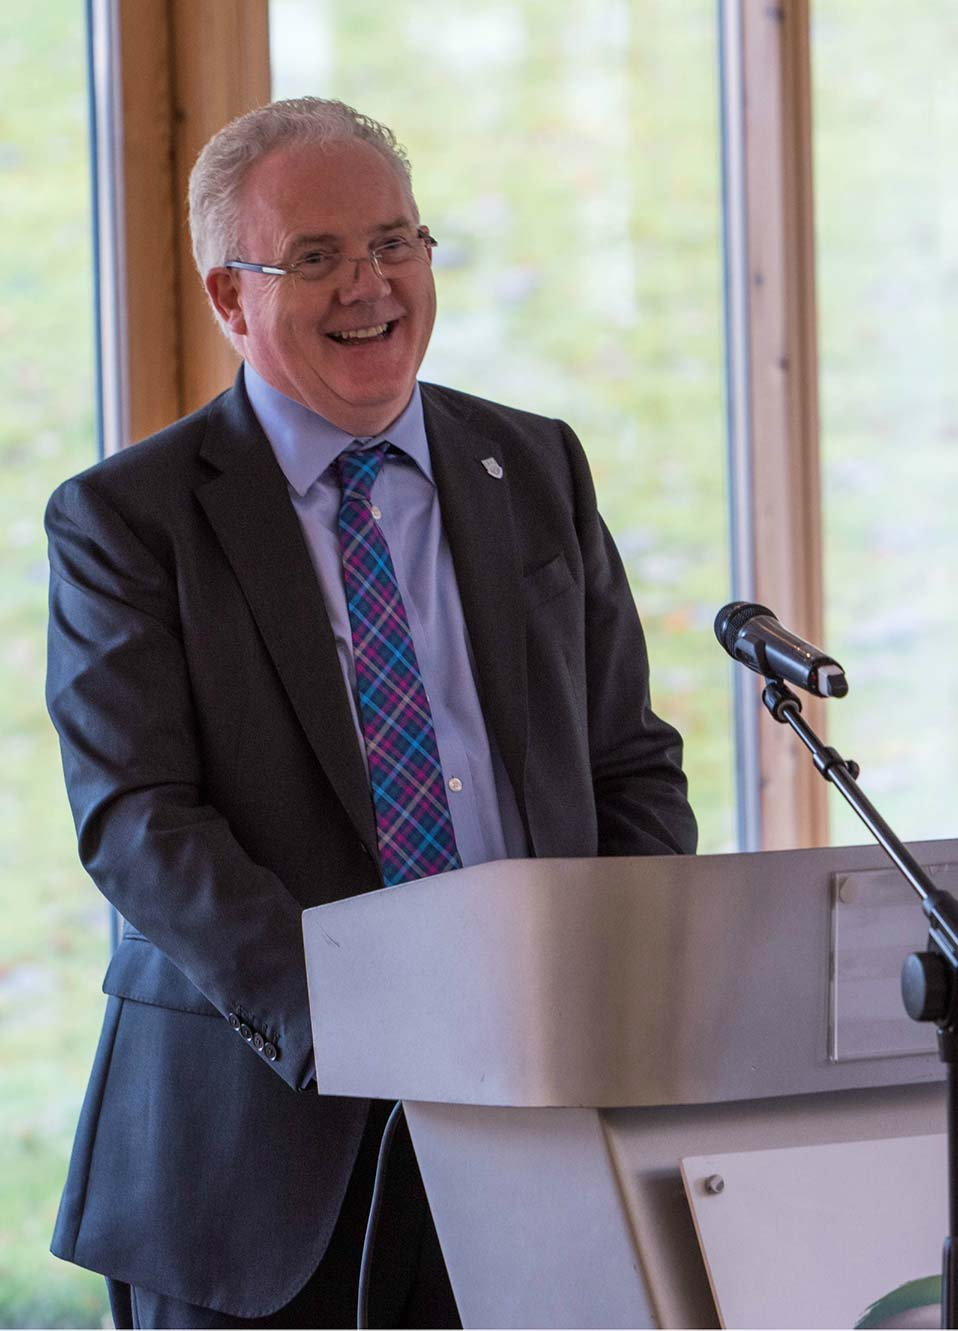 University of Stirling to host 2018 Special Olympics event | About